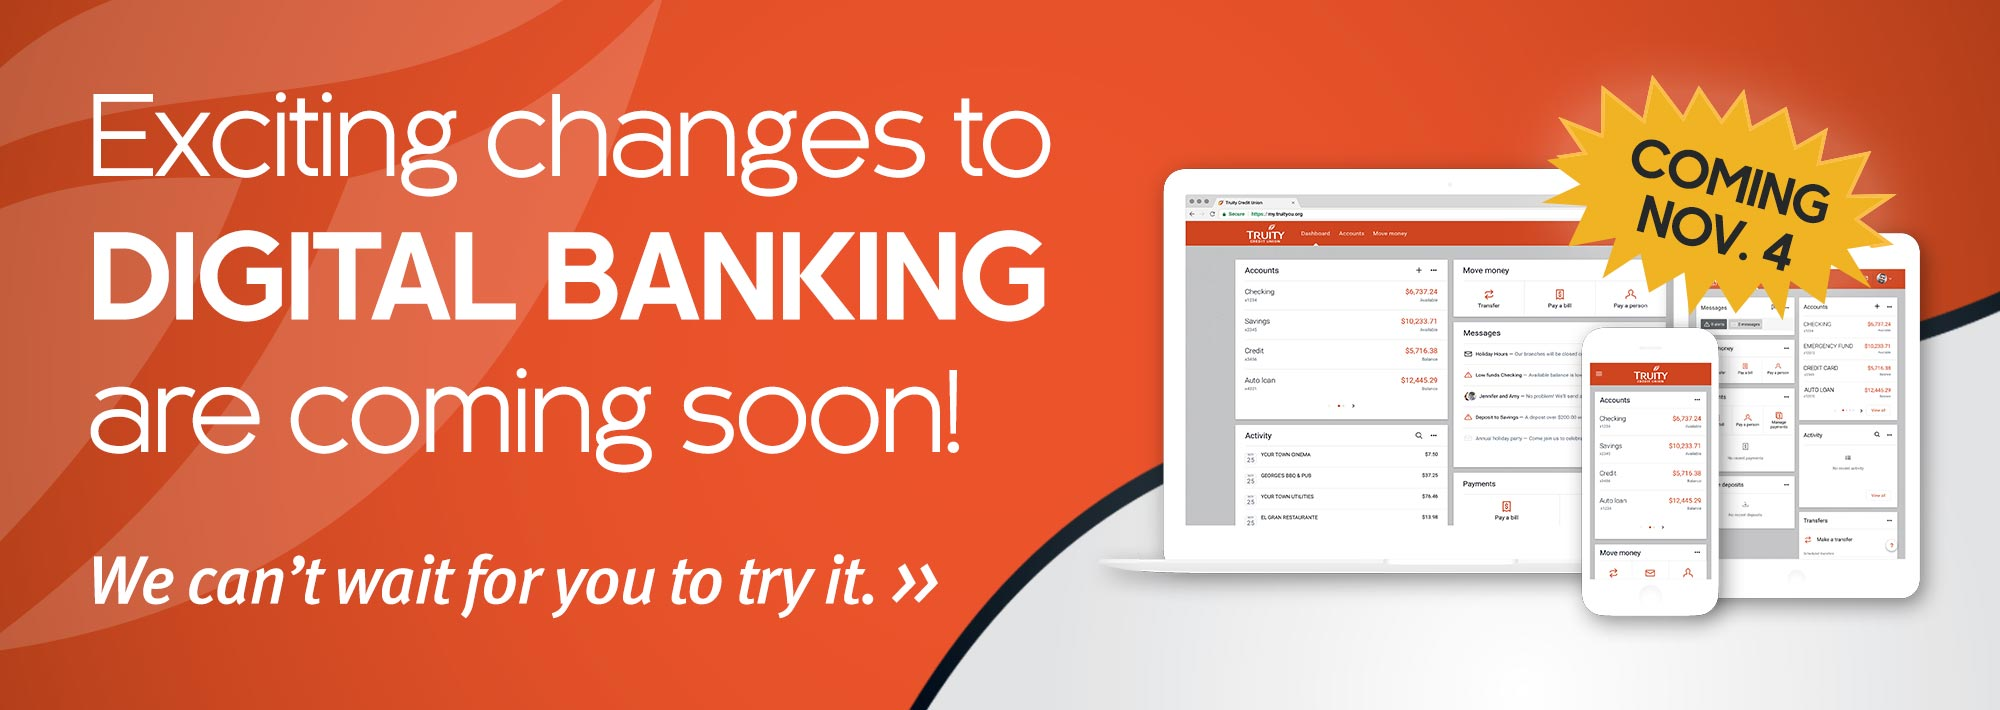 Exciting changes to Digital Banking are coming Nov 4. We can't wait for you to try it!